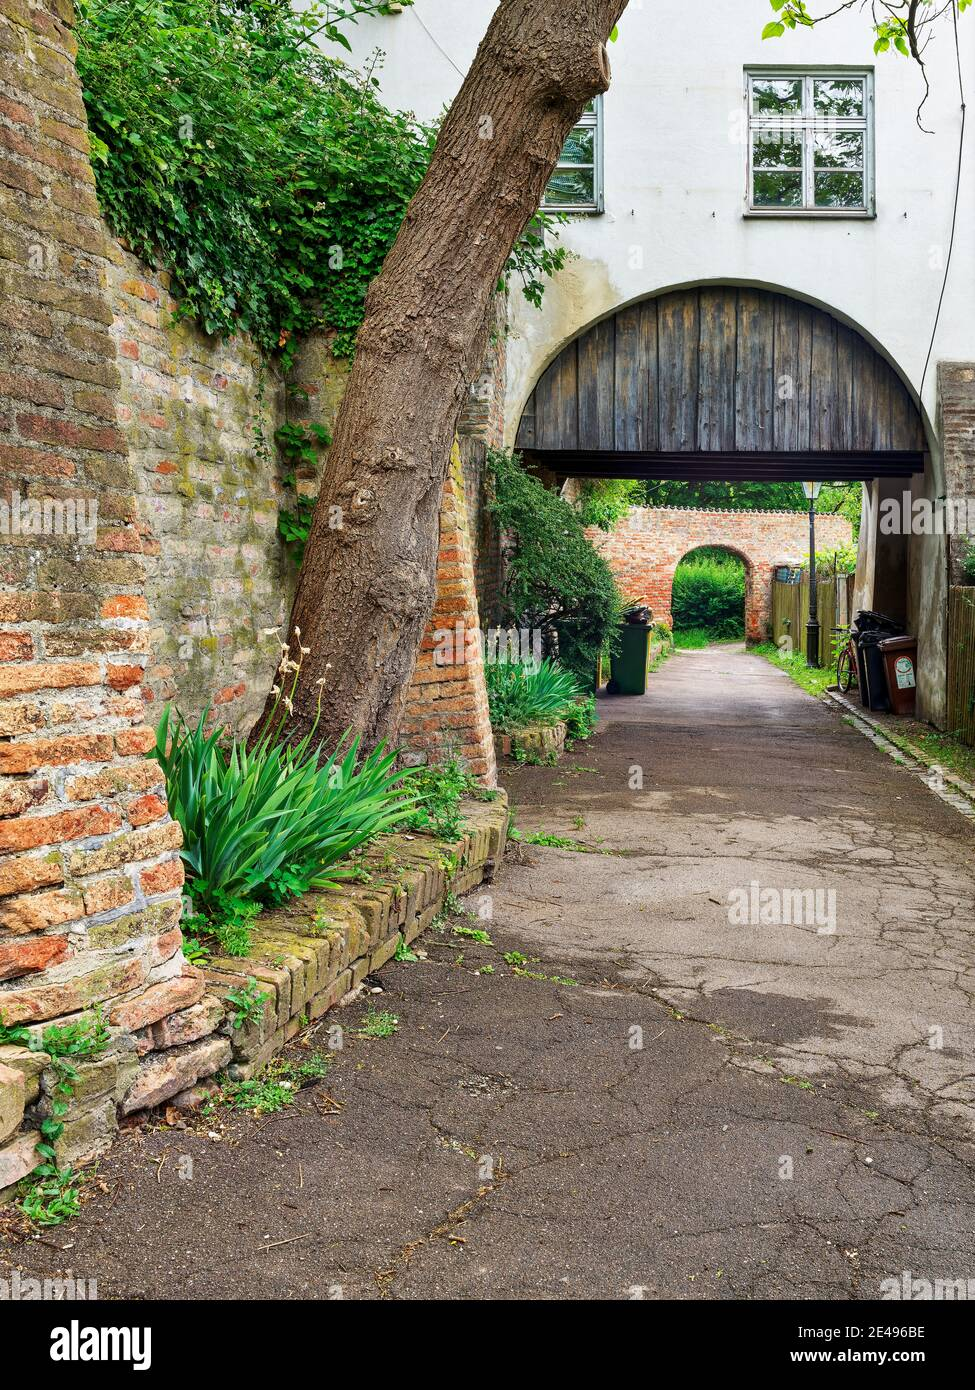 City wall, brick wall, fortification, bastion, historical old town, historical monument, monument site, listed, monument protection, place of interest, historical place of interest Stock Photo